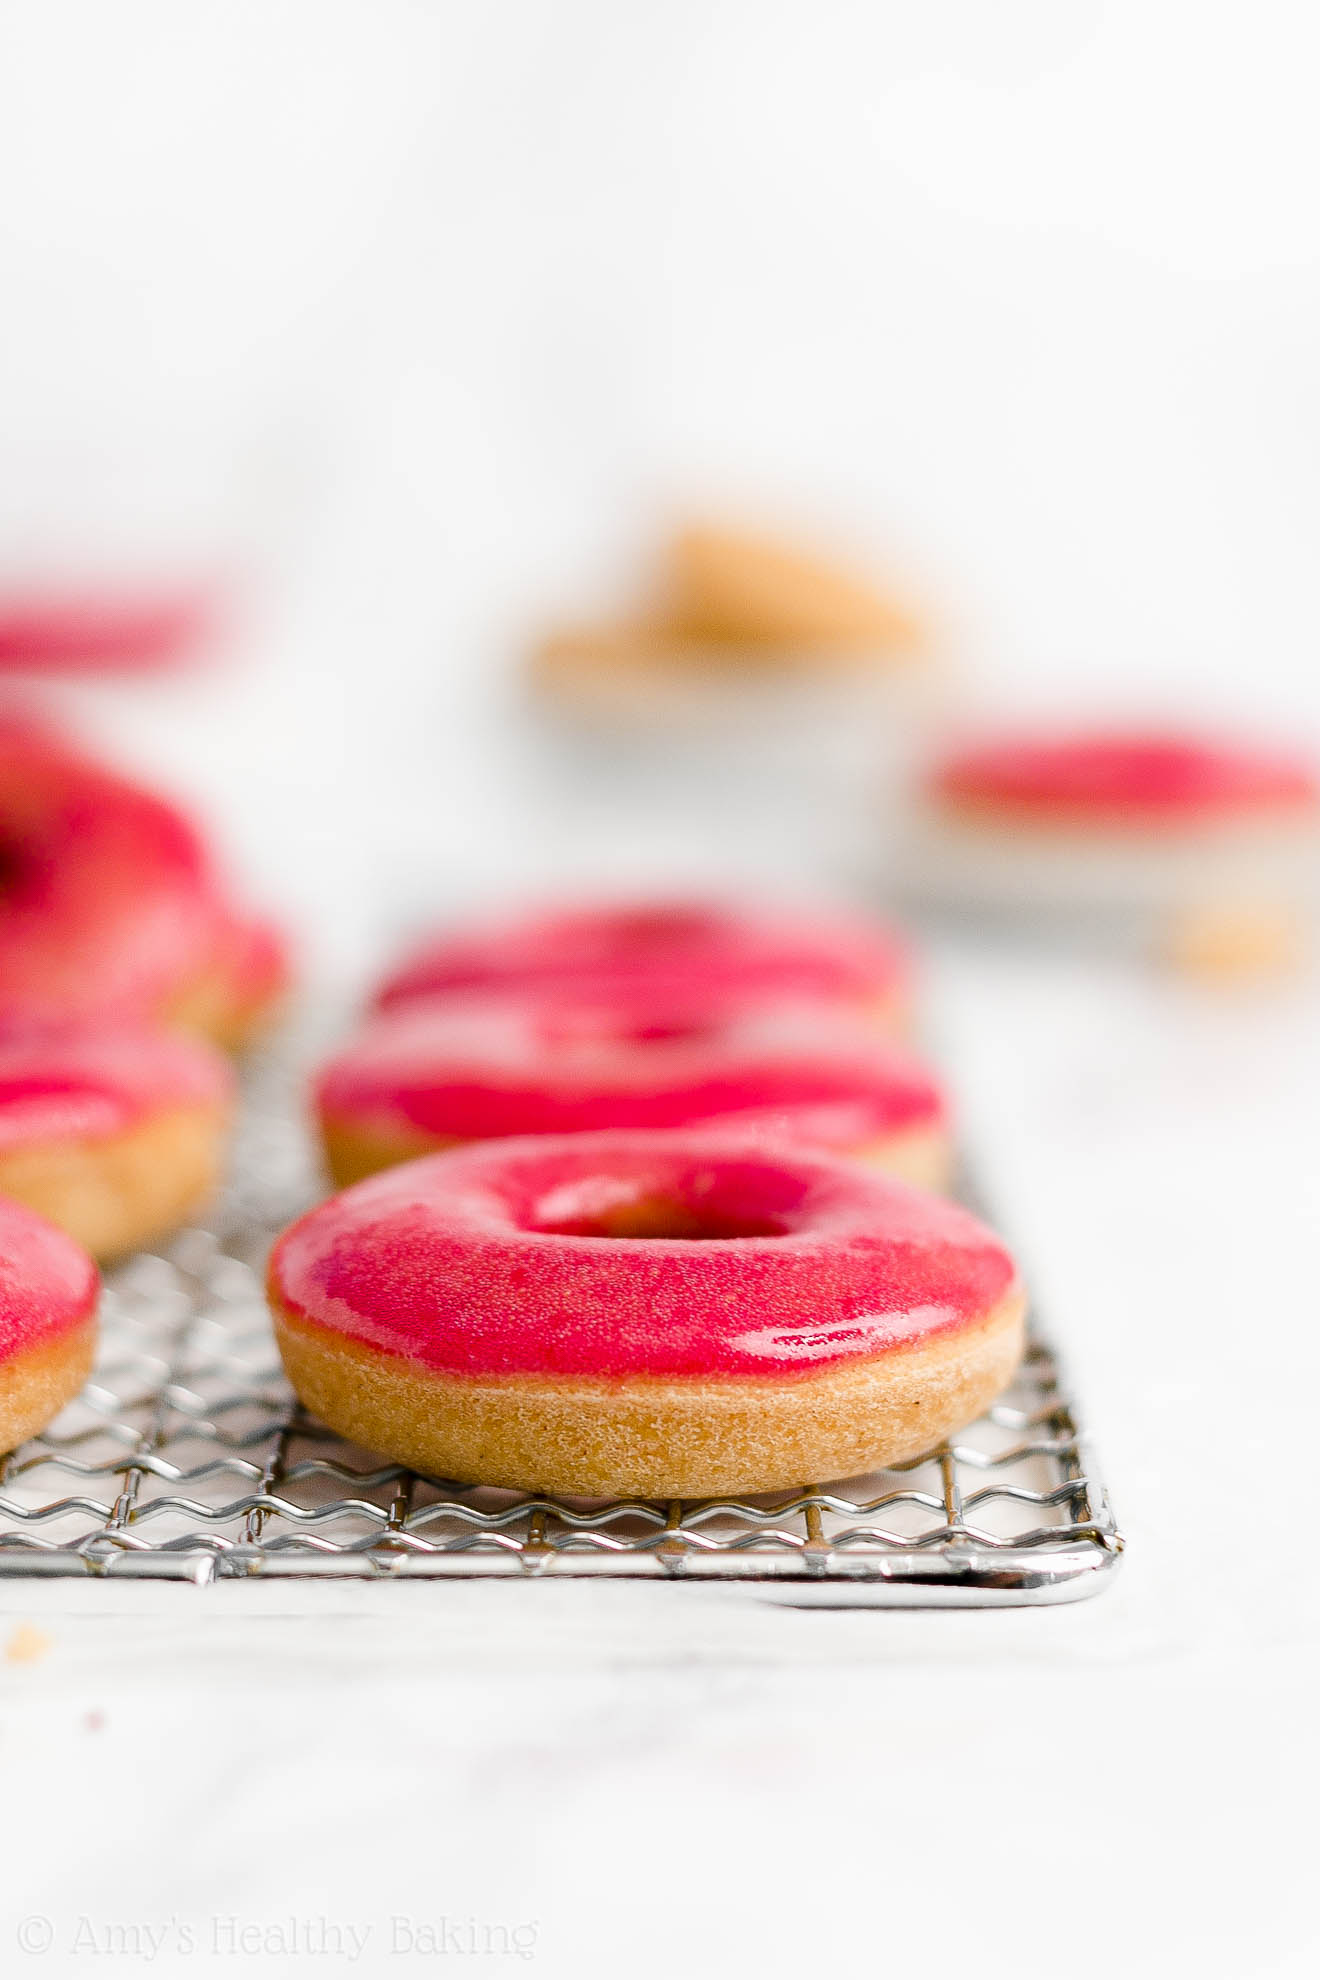 BEST Healthy Gluten Free Low Calorie Baked Vanilla Donuts with Raspberry Glaze